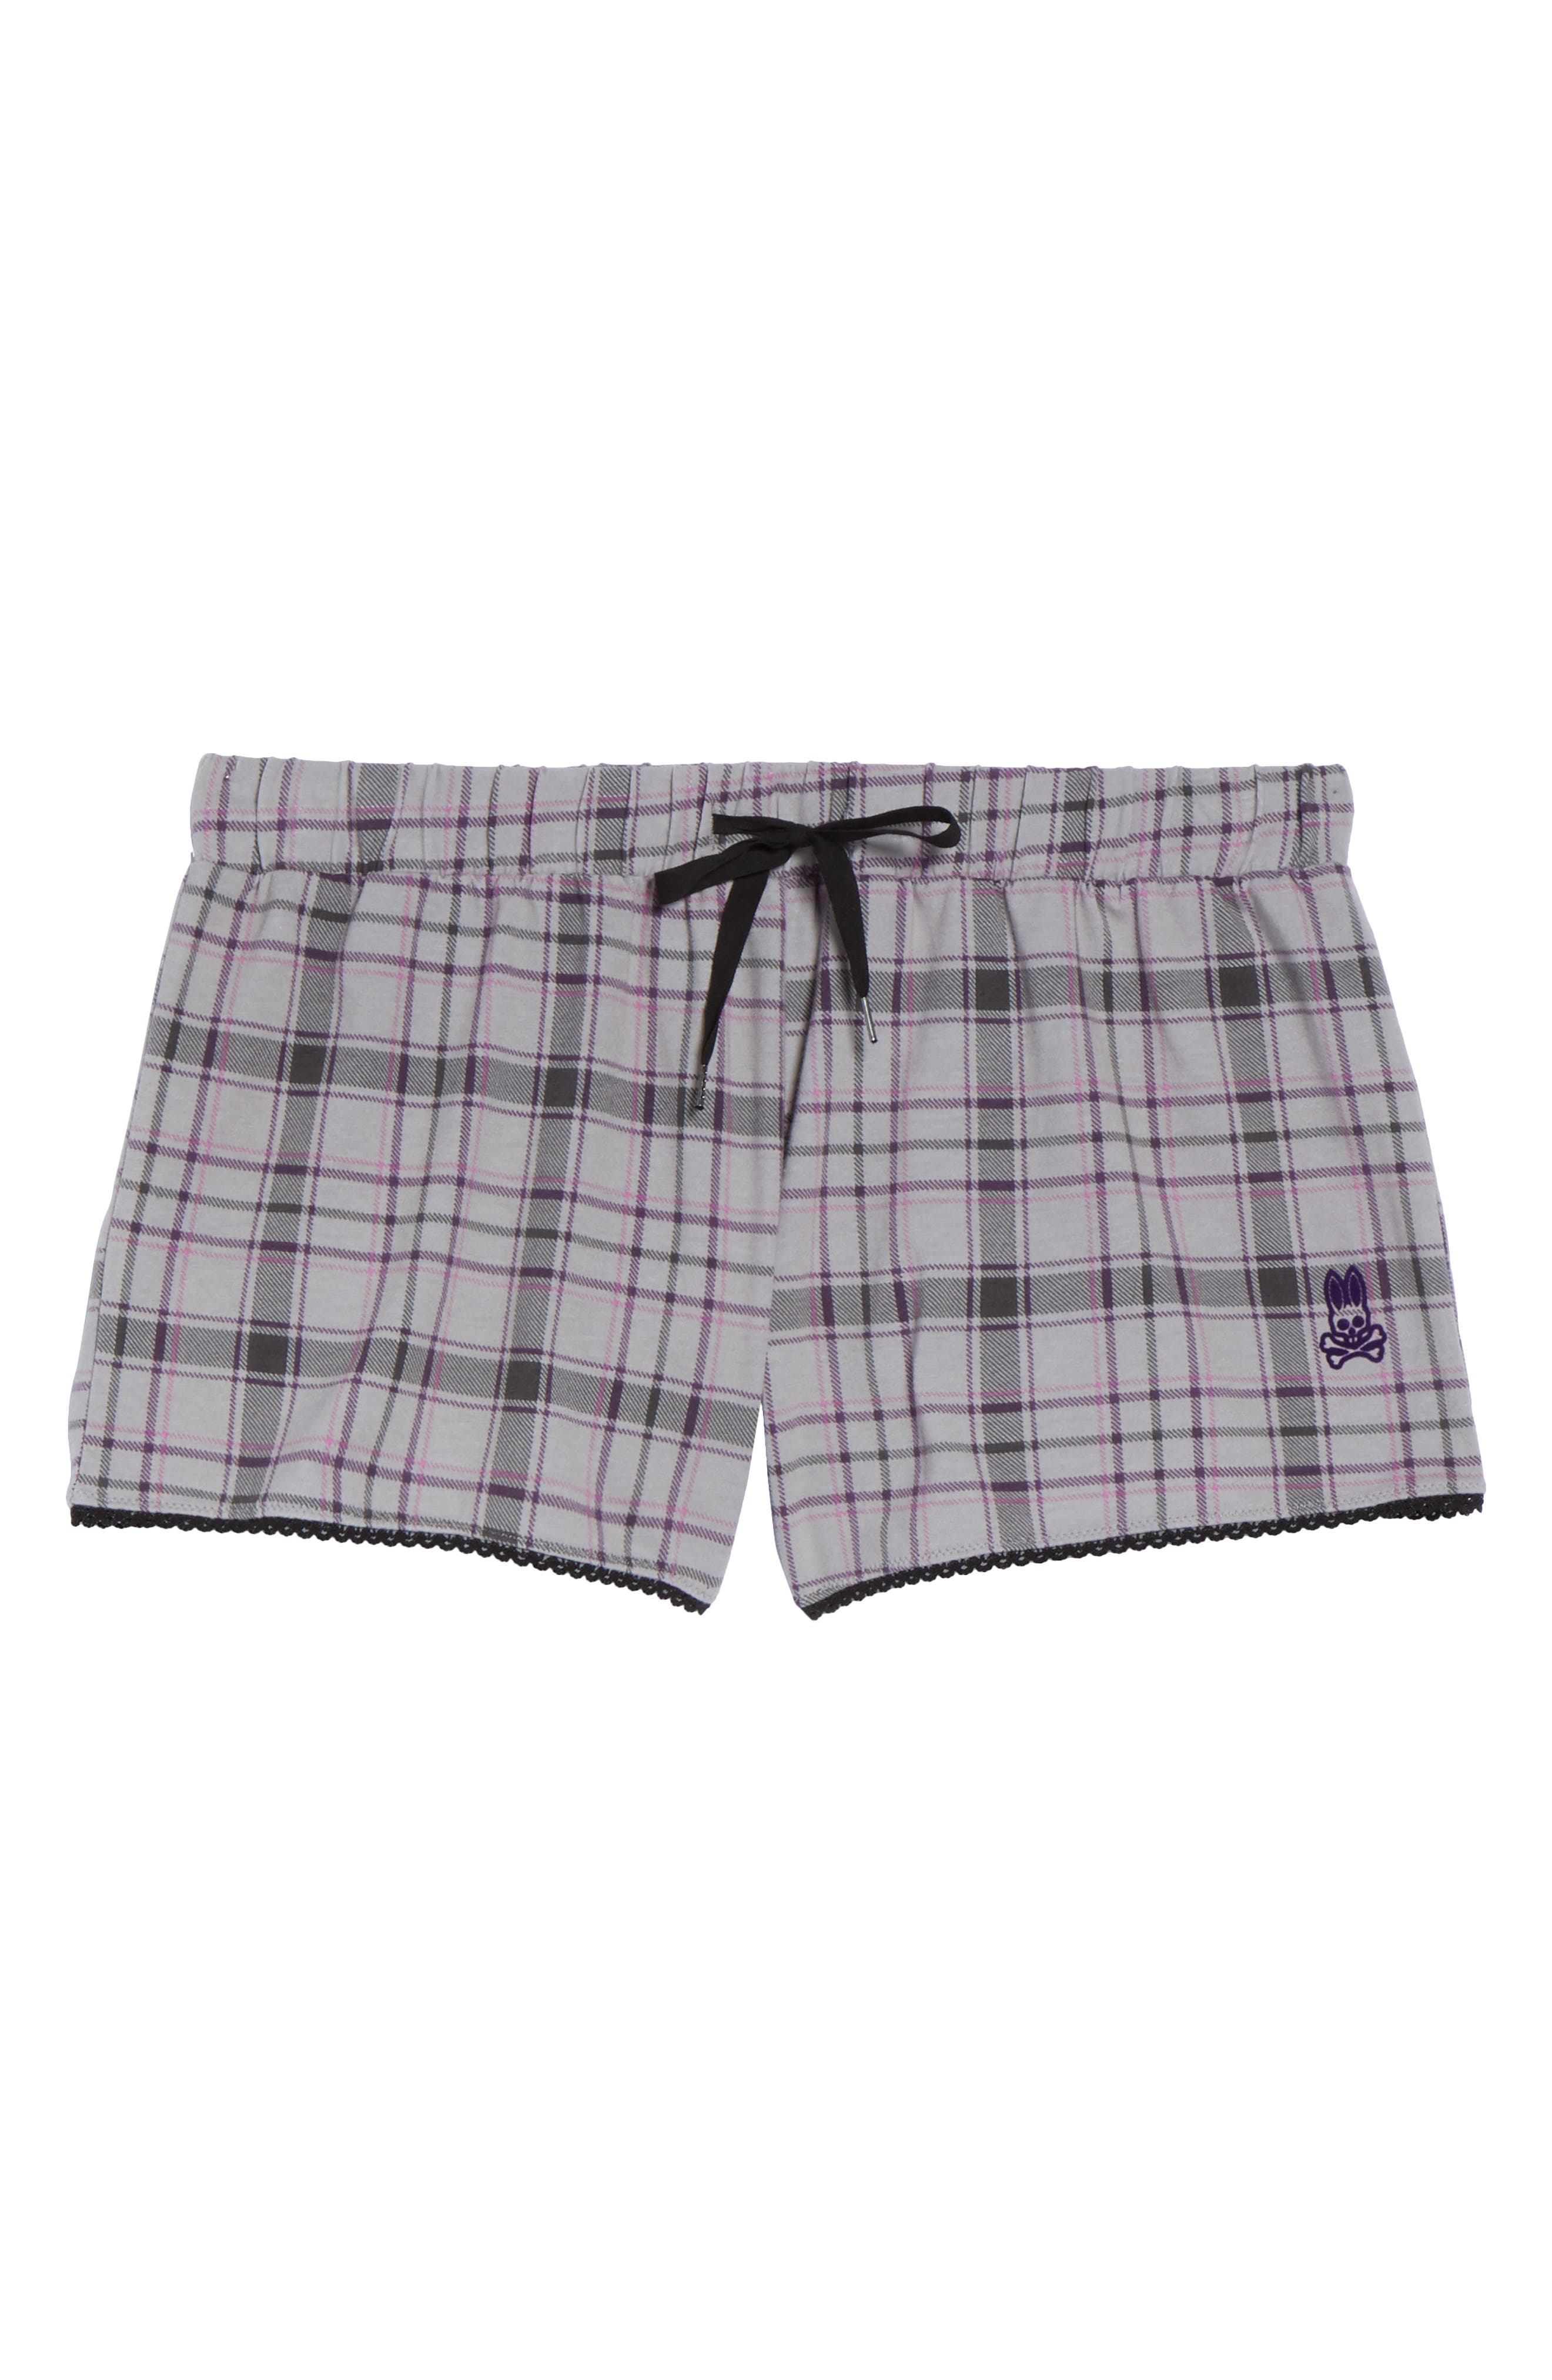 Pajama Shorts,                             Alternate thumbnail 6, color,                             020